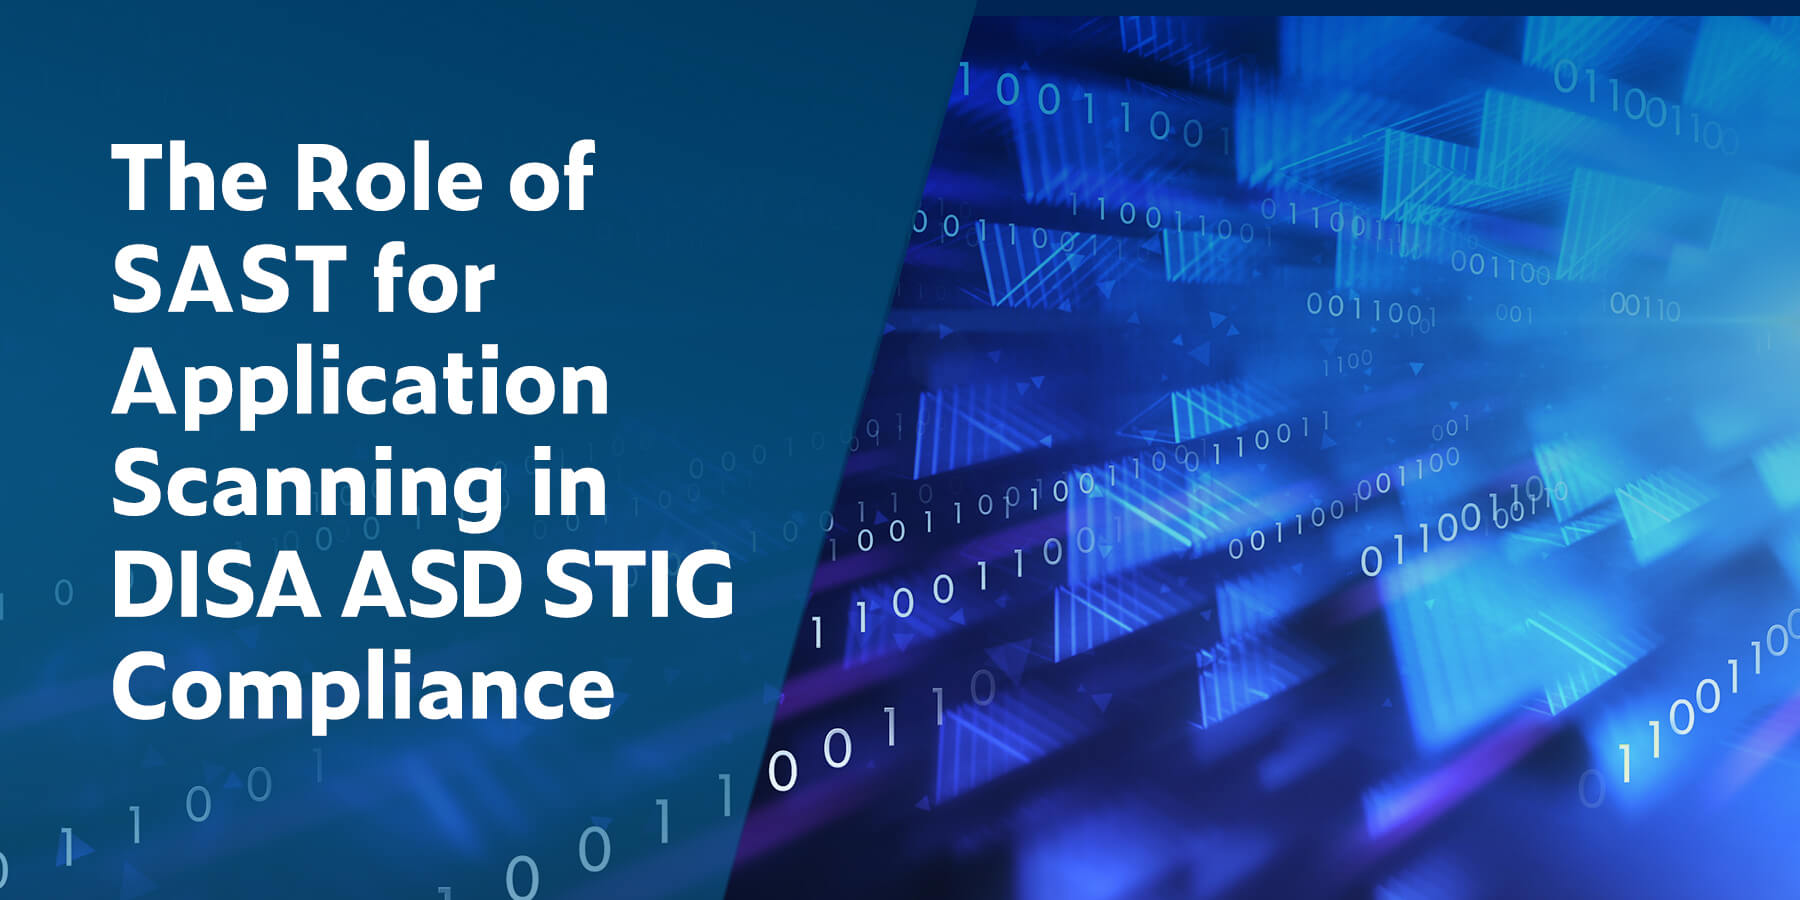 The Role of SAST for Application Scanning in DISA ASD STIG Compliance